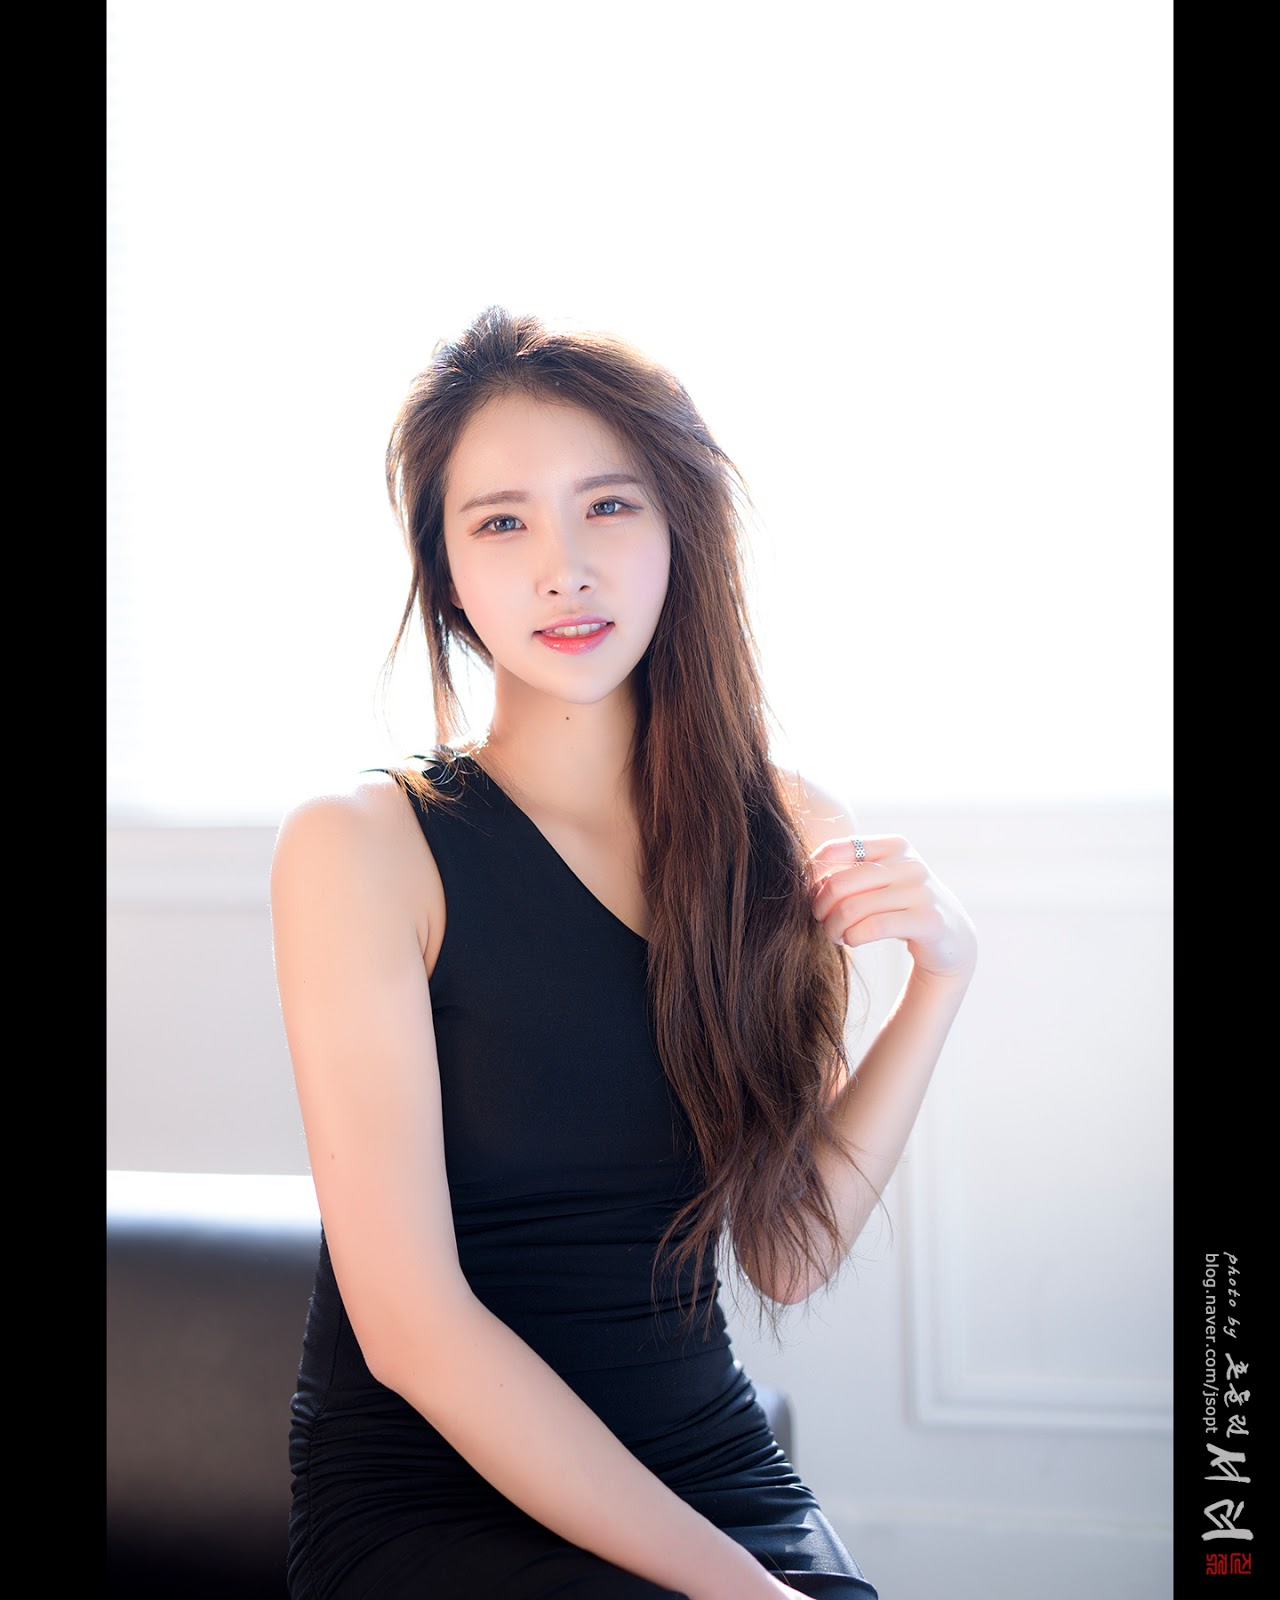 kim asian girl personals The 11 differences between dating an asian guy vs a caucasian guy there are many myths and stereotypes when it comes to dating asian guys some are completely outlandish and some are, well, a little more spot on.